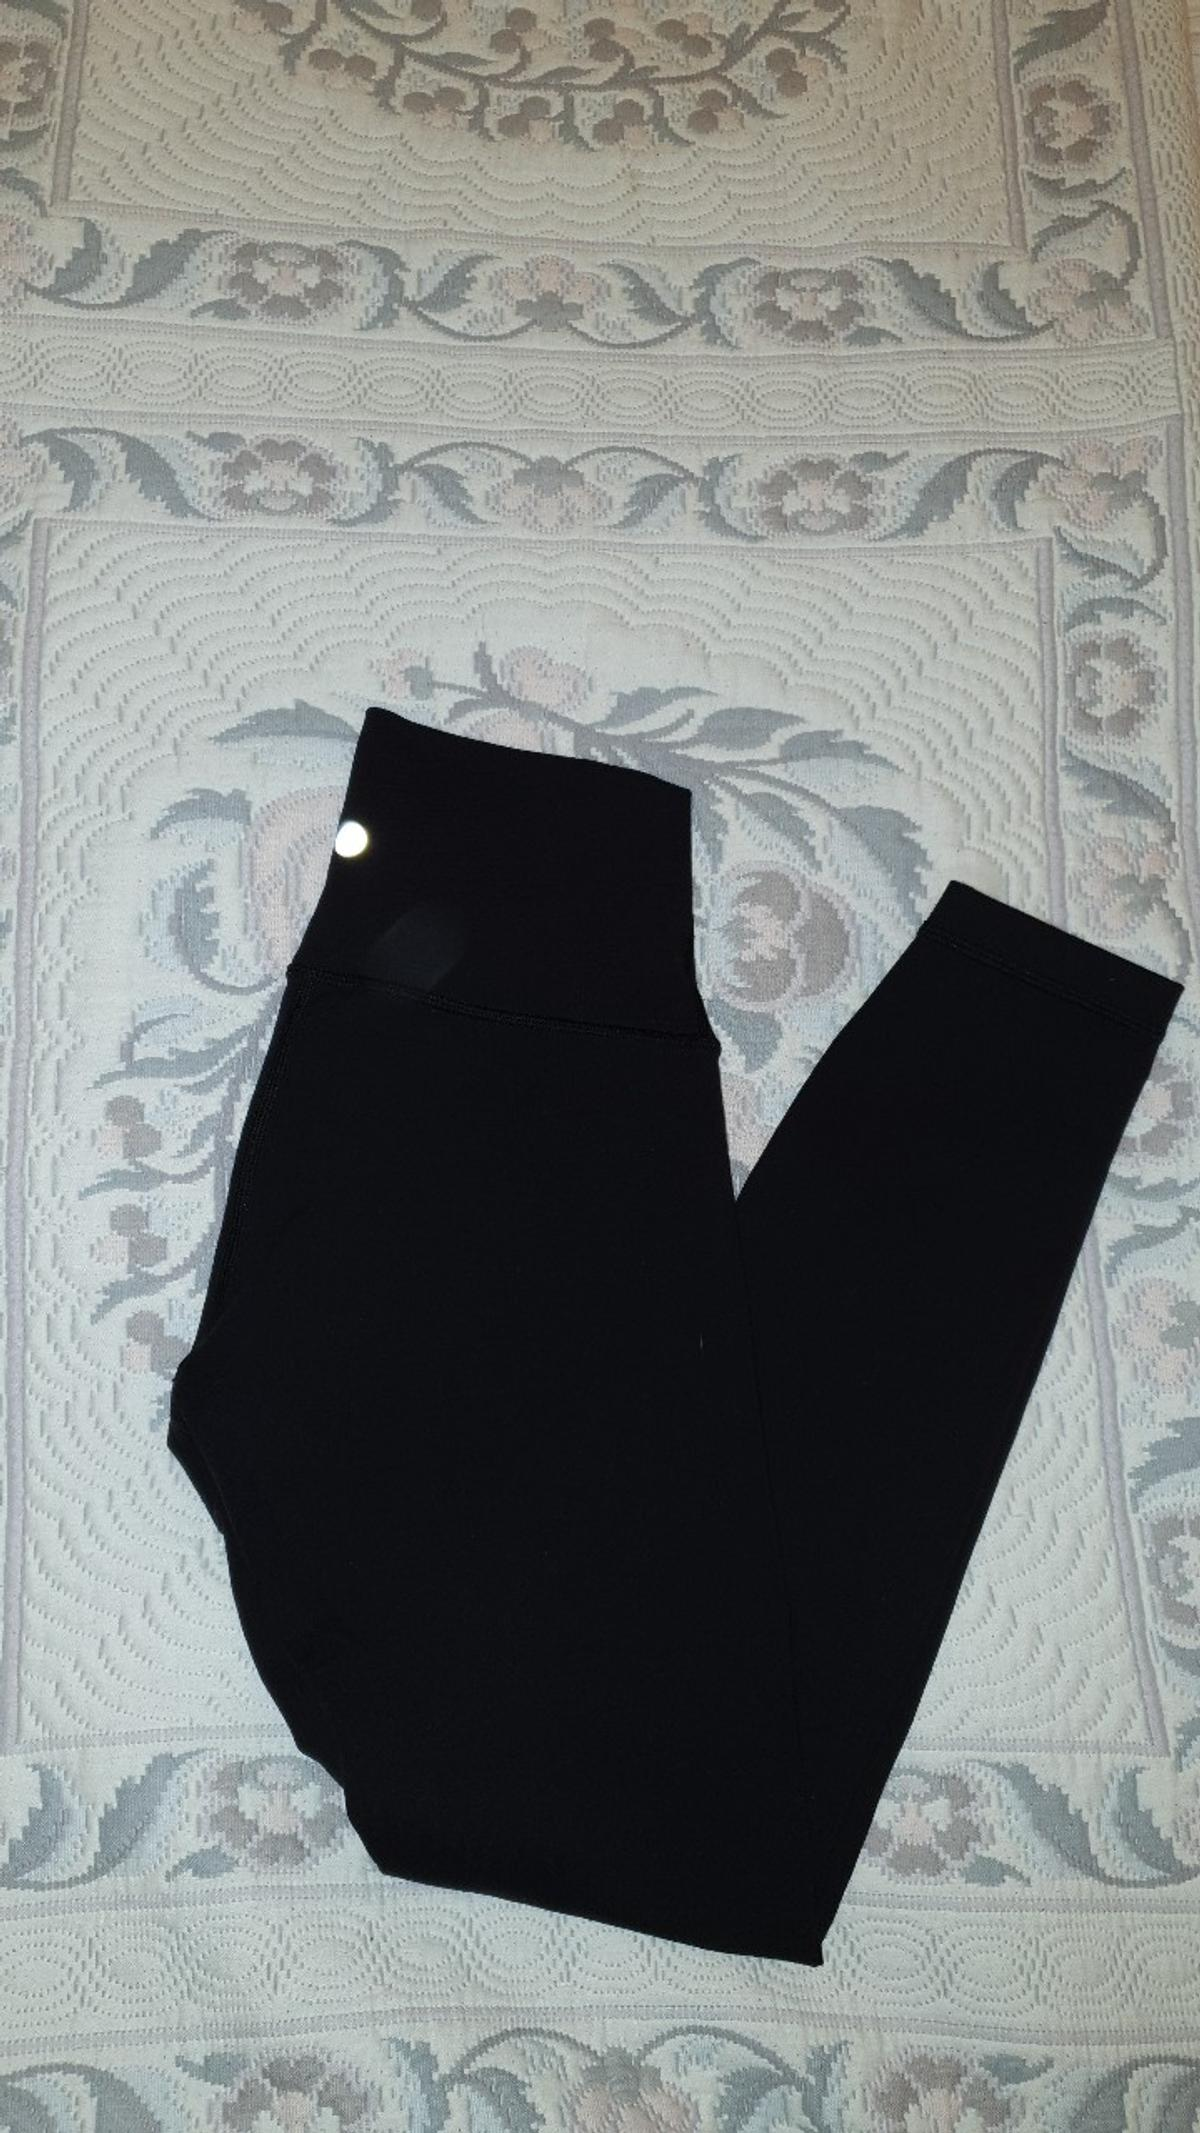 lulu lemon wonder under leggings size 4 (UK 6/8) black. thicker than lulu aligns so more suitable for outside or colder weather. they are slightly tighter than aligns so give extra support around legs and stomach which aligns don't. They come with a card/key holder inside of the waist band. worn a few times. selling as too many leggings. good condition. bought for £78. no interior label as I cut it out for comfort purposes.